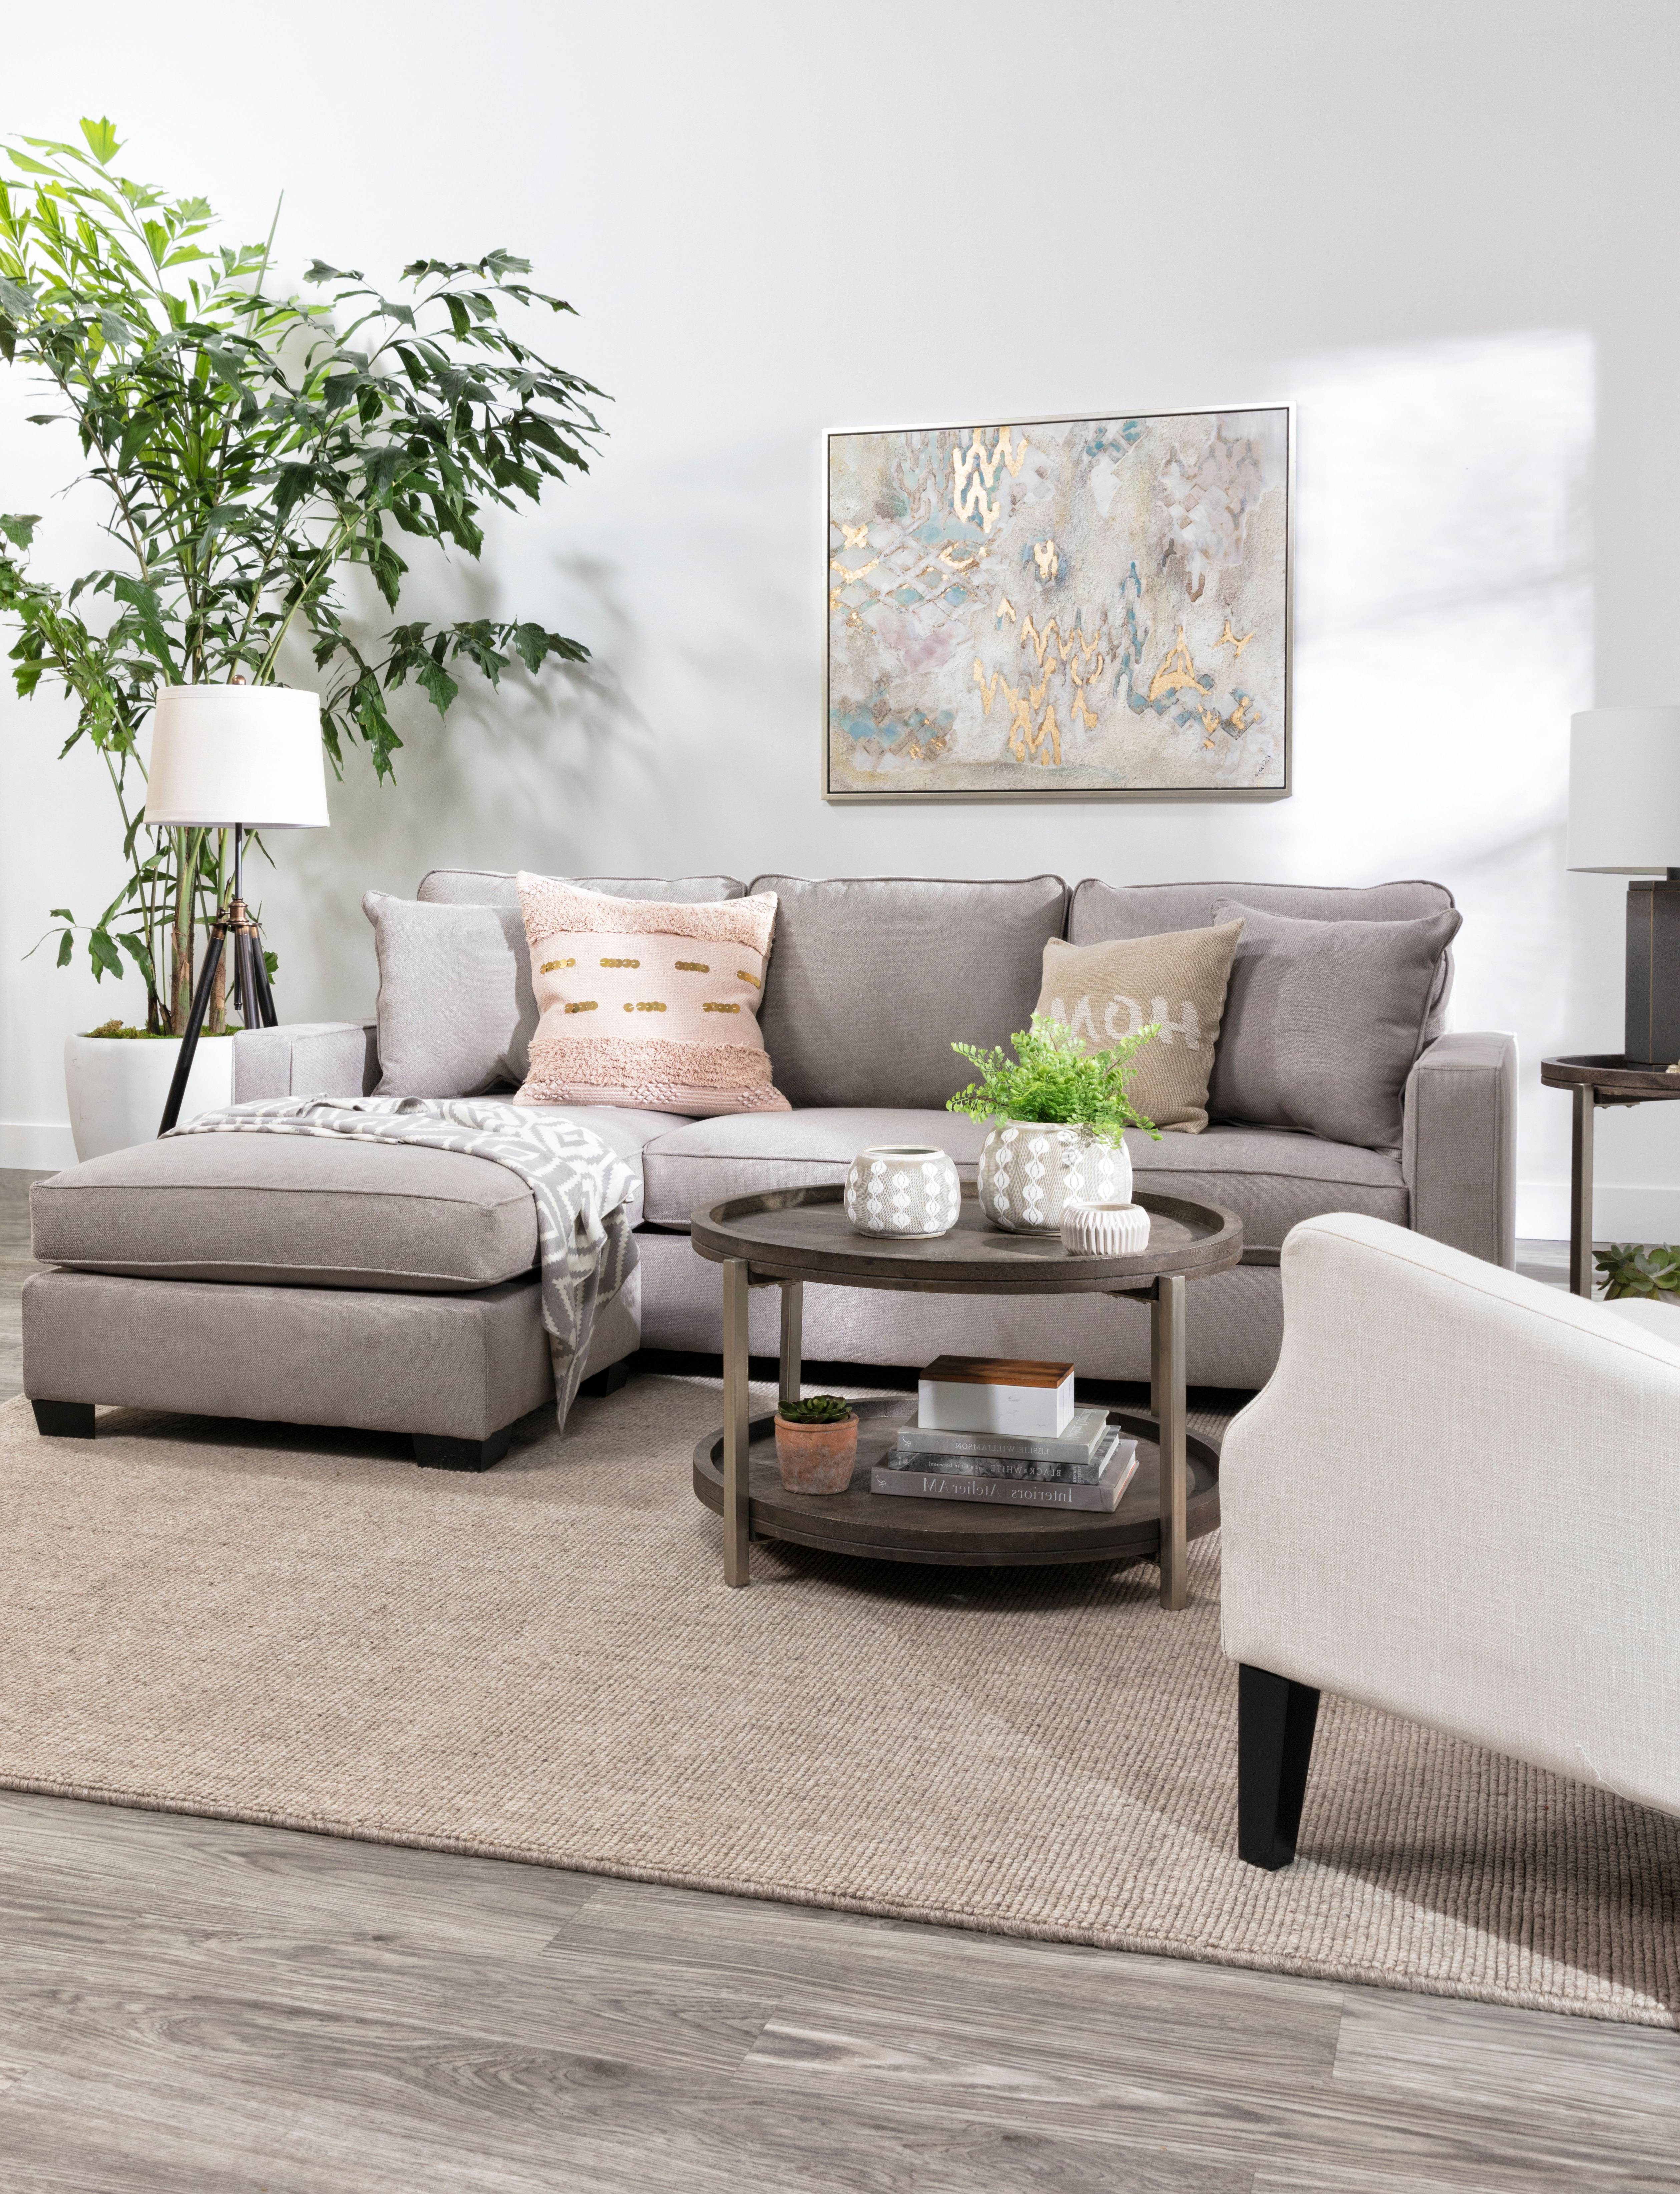 Egan Ii Cement Sofa Sectionals With Reversible Chaise With Regard To Best And Newest Egan Ii Cement Sofa W/reversible Chaise In 2018 (Gallery 5 of 20)